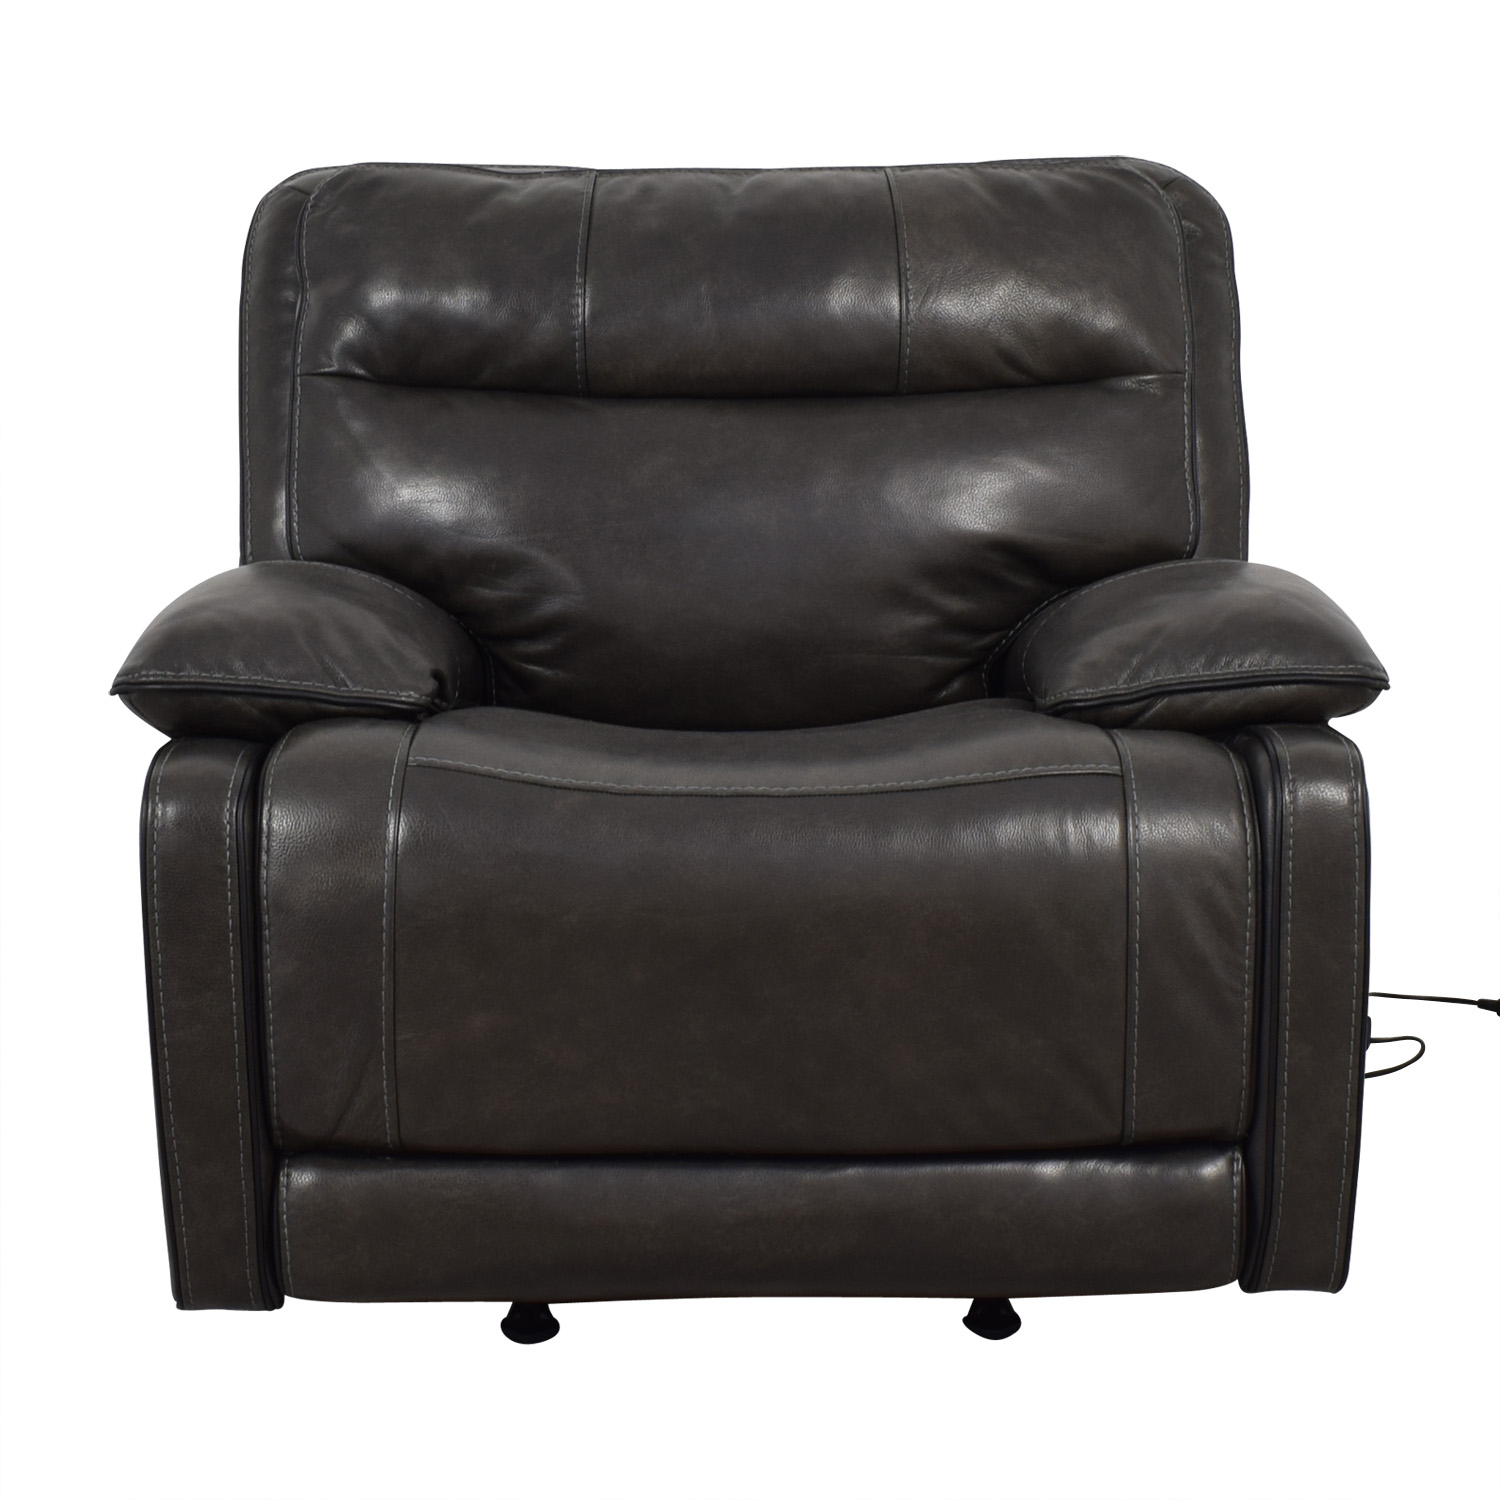 Ashley Furniture Recliner Chairs 90 Off Ashley Furniture Palladum Leather Metal Power Recliner Chairs